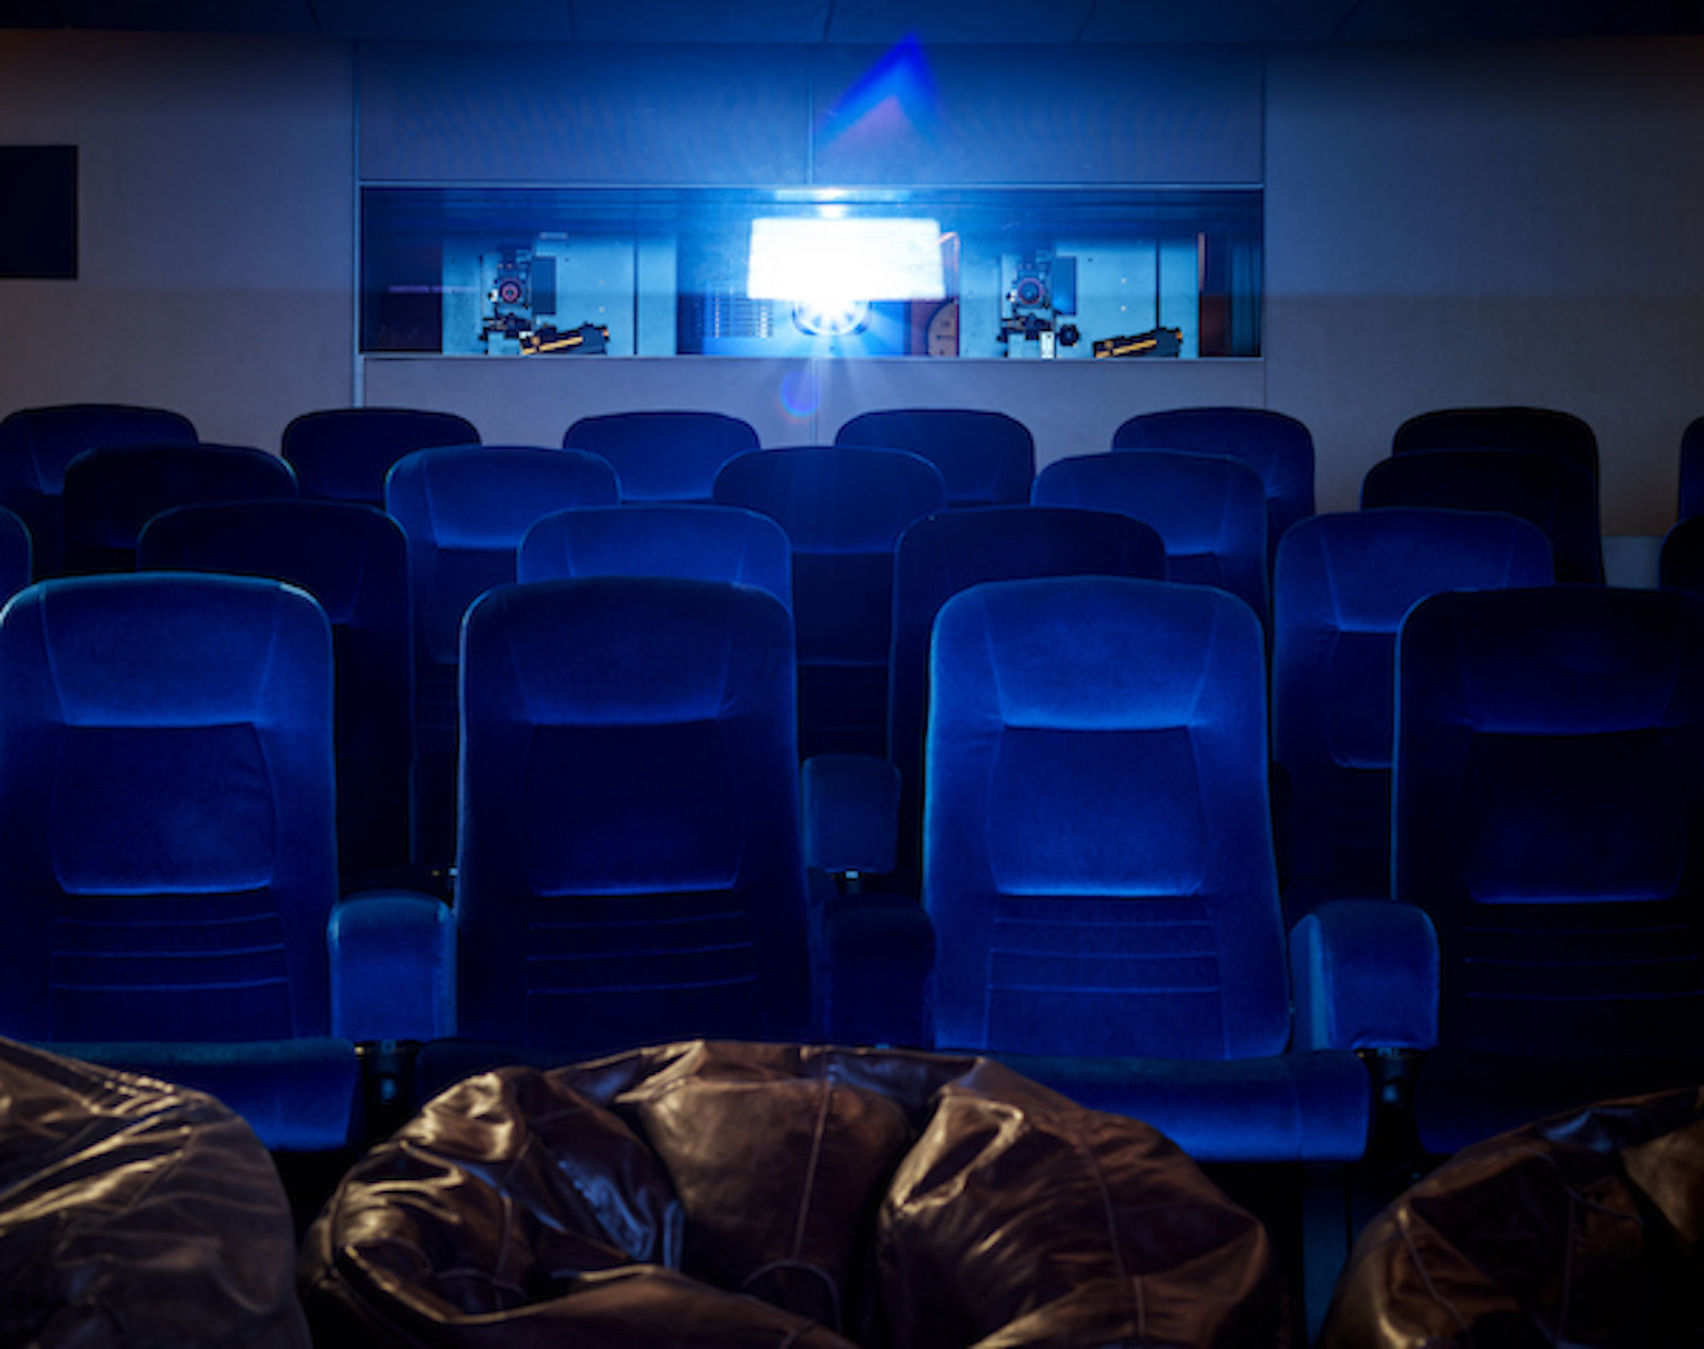 Rows of electric blue cinema seats